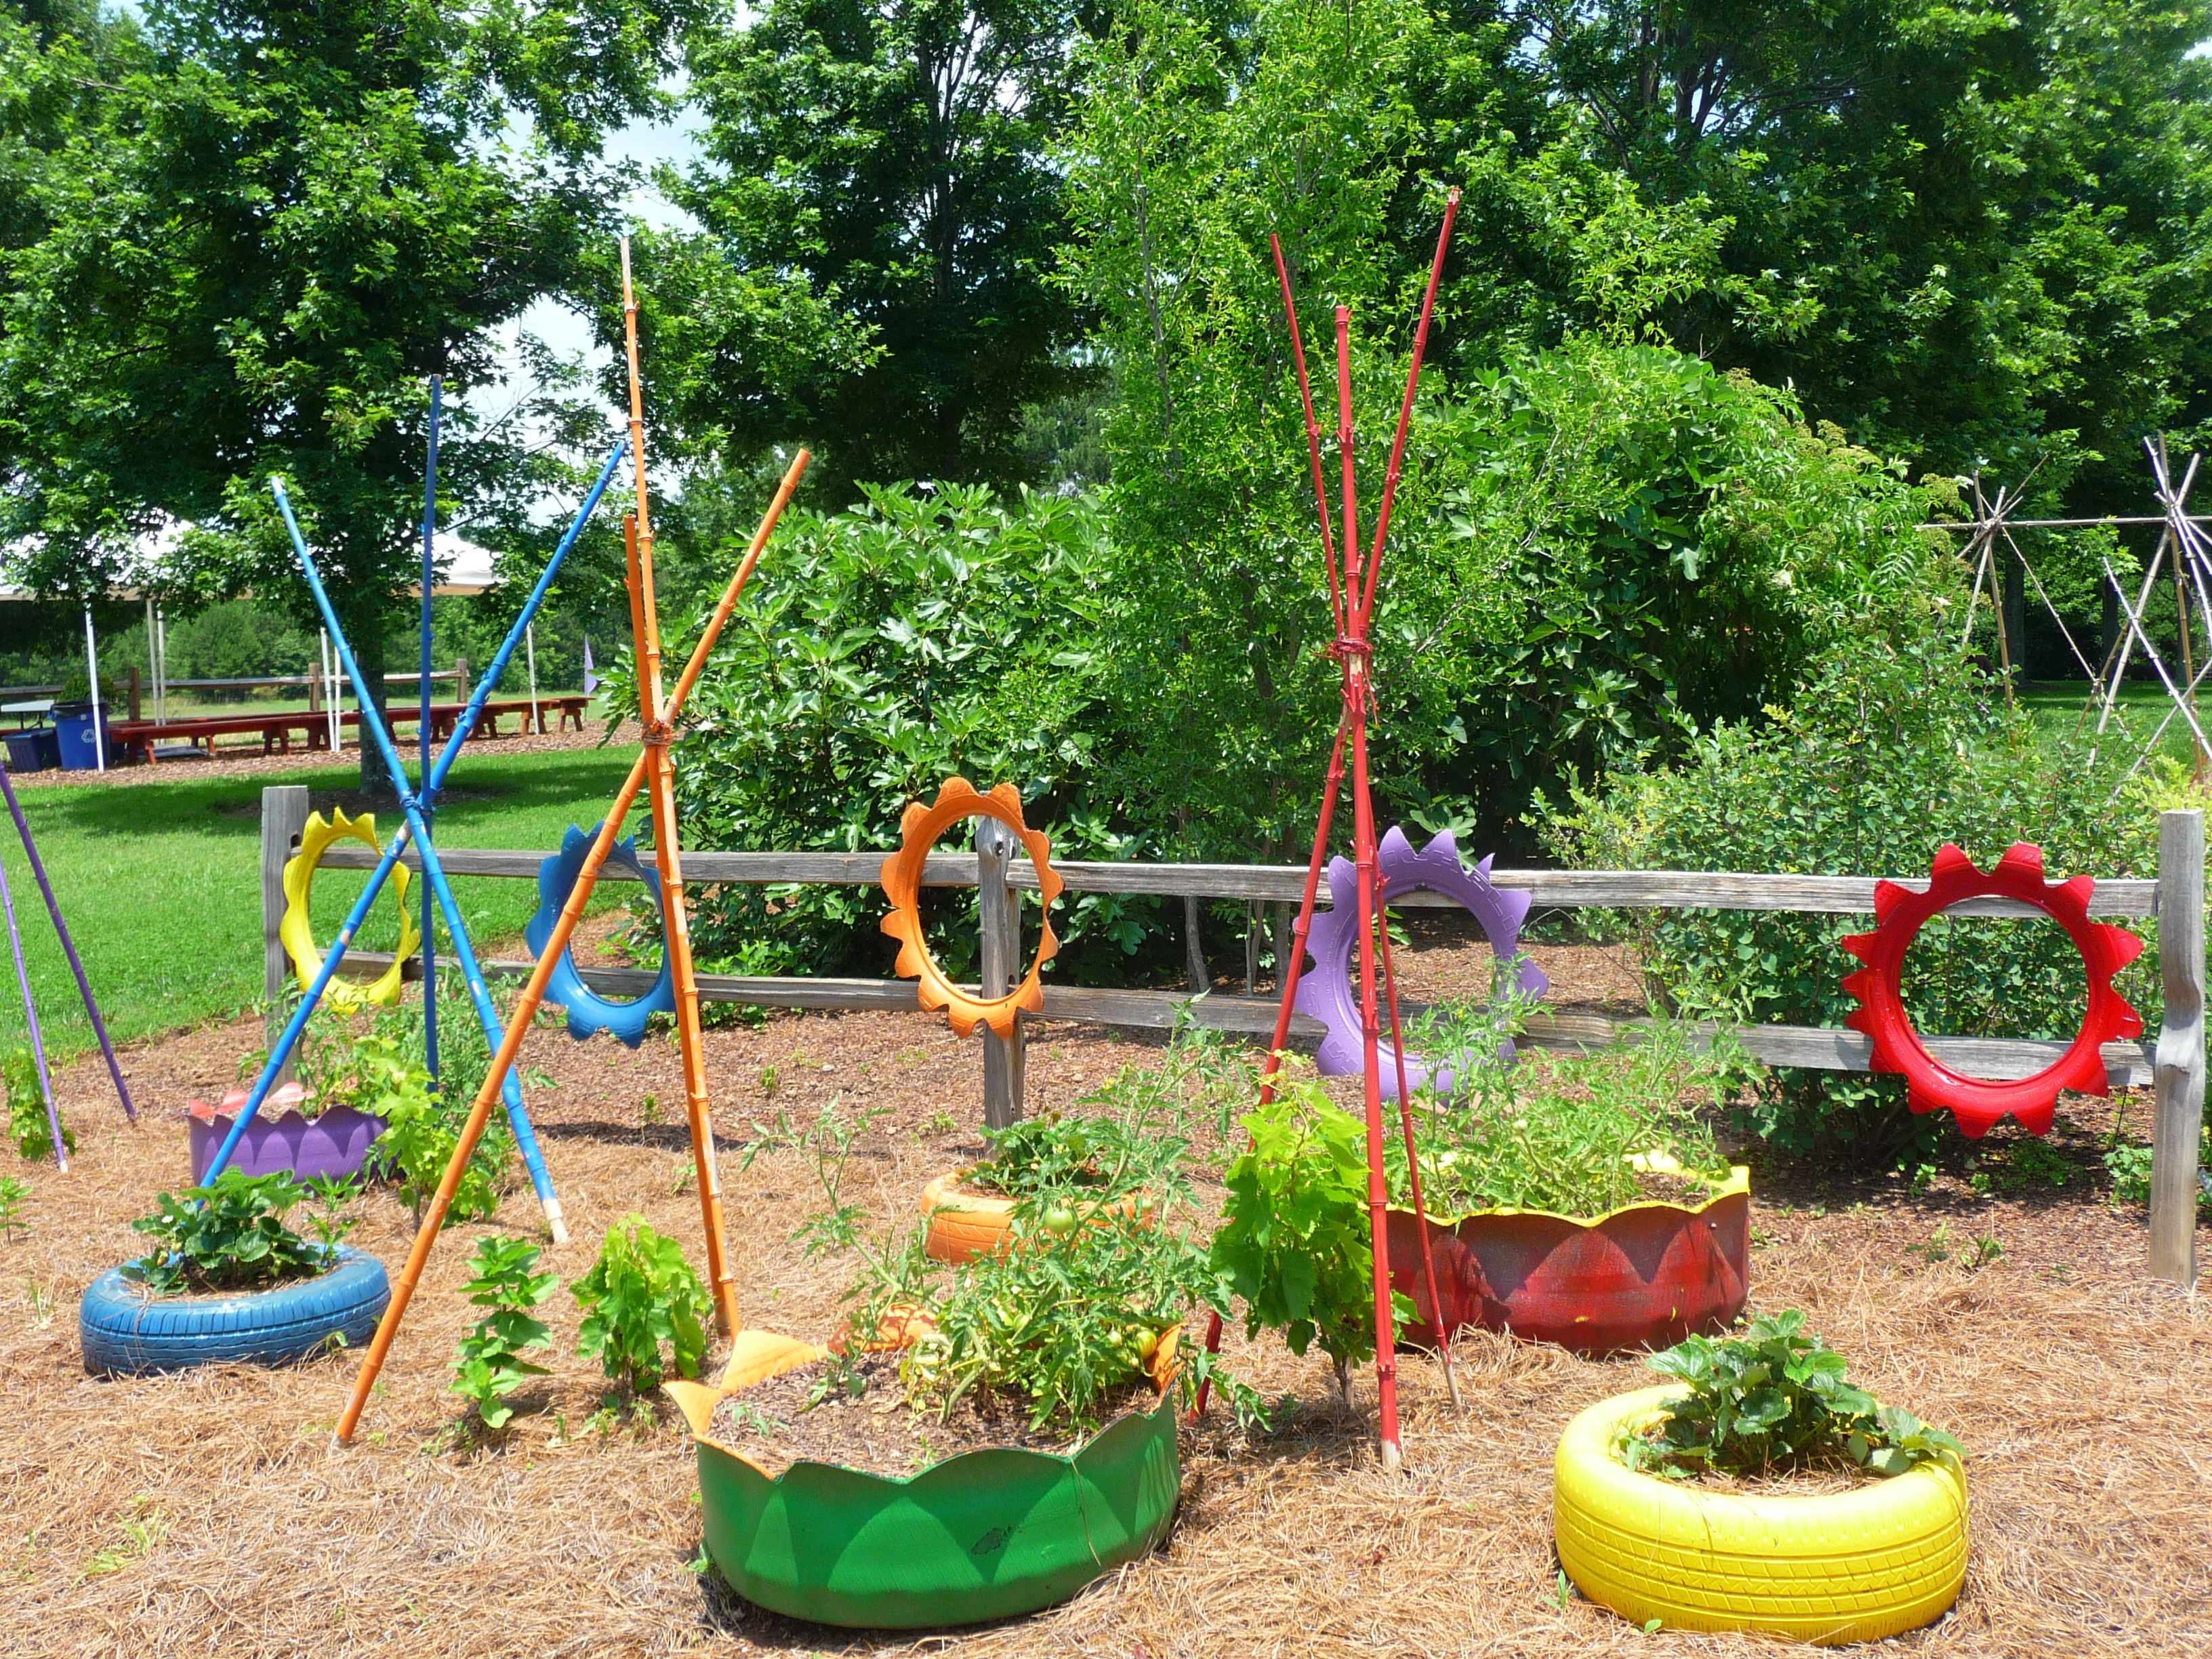 Children 39 s garden painted tires and tepees godwottery - Painted tires for gardens ...